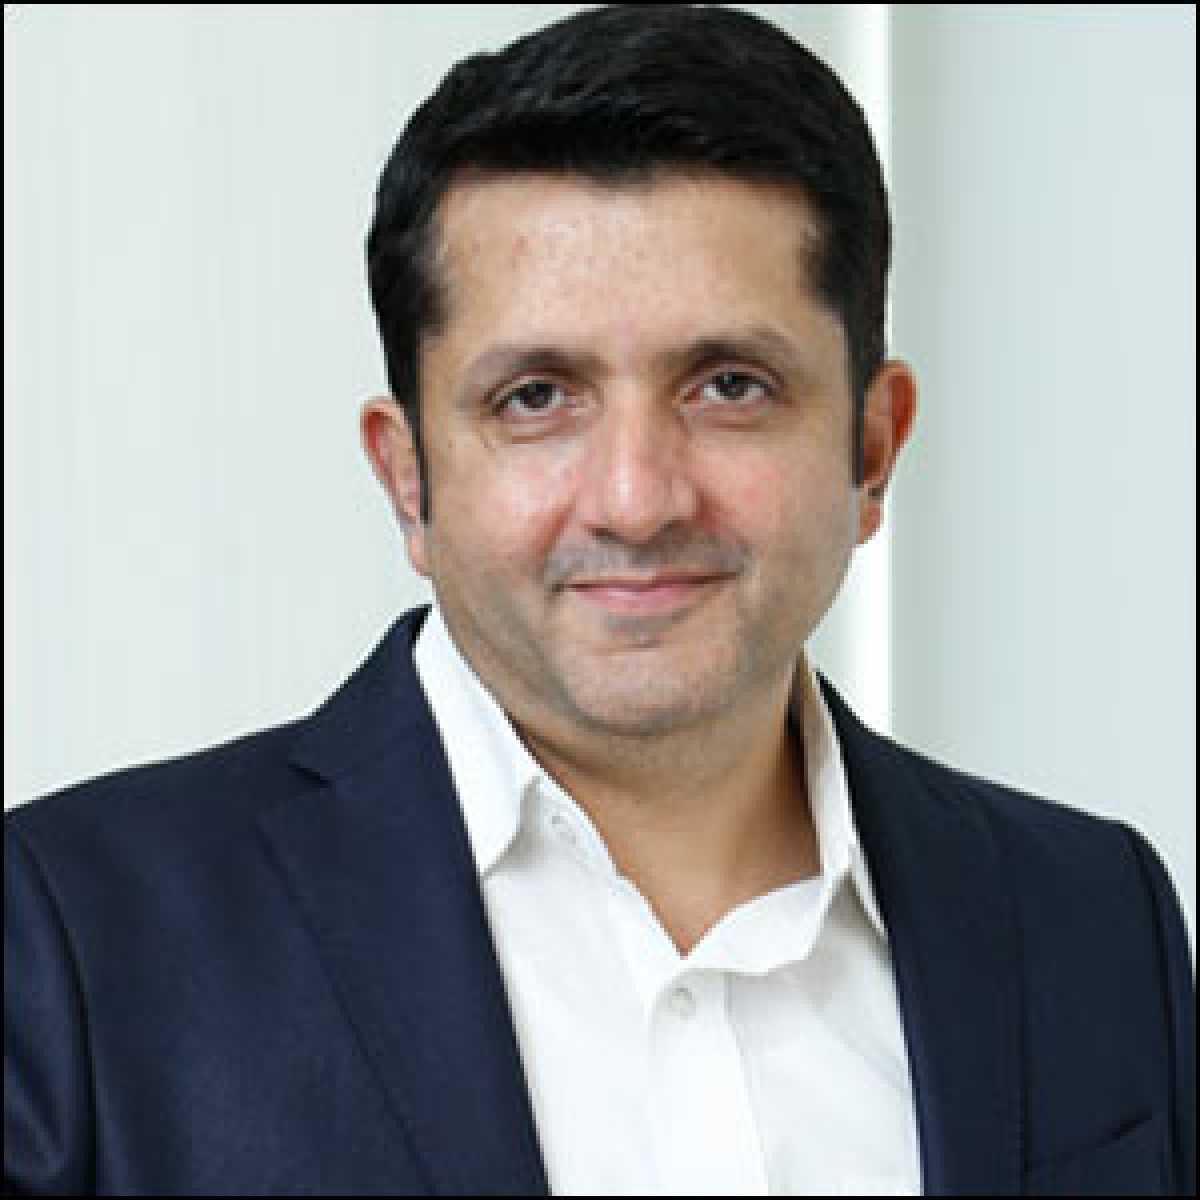 Mindshare South Asia makes key appointments in leadership roles